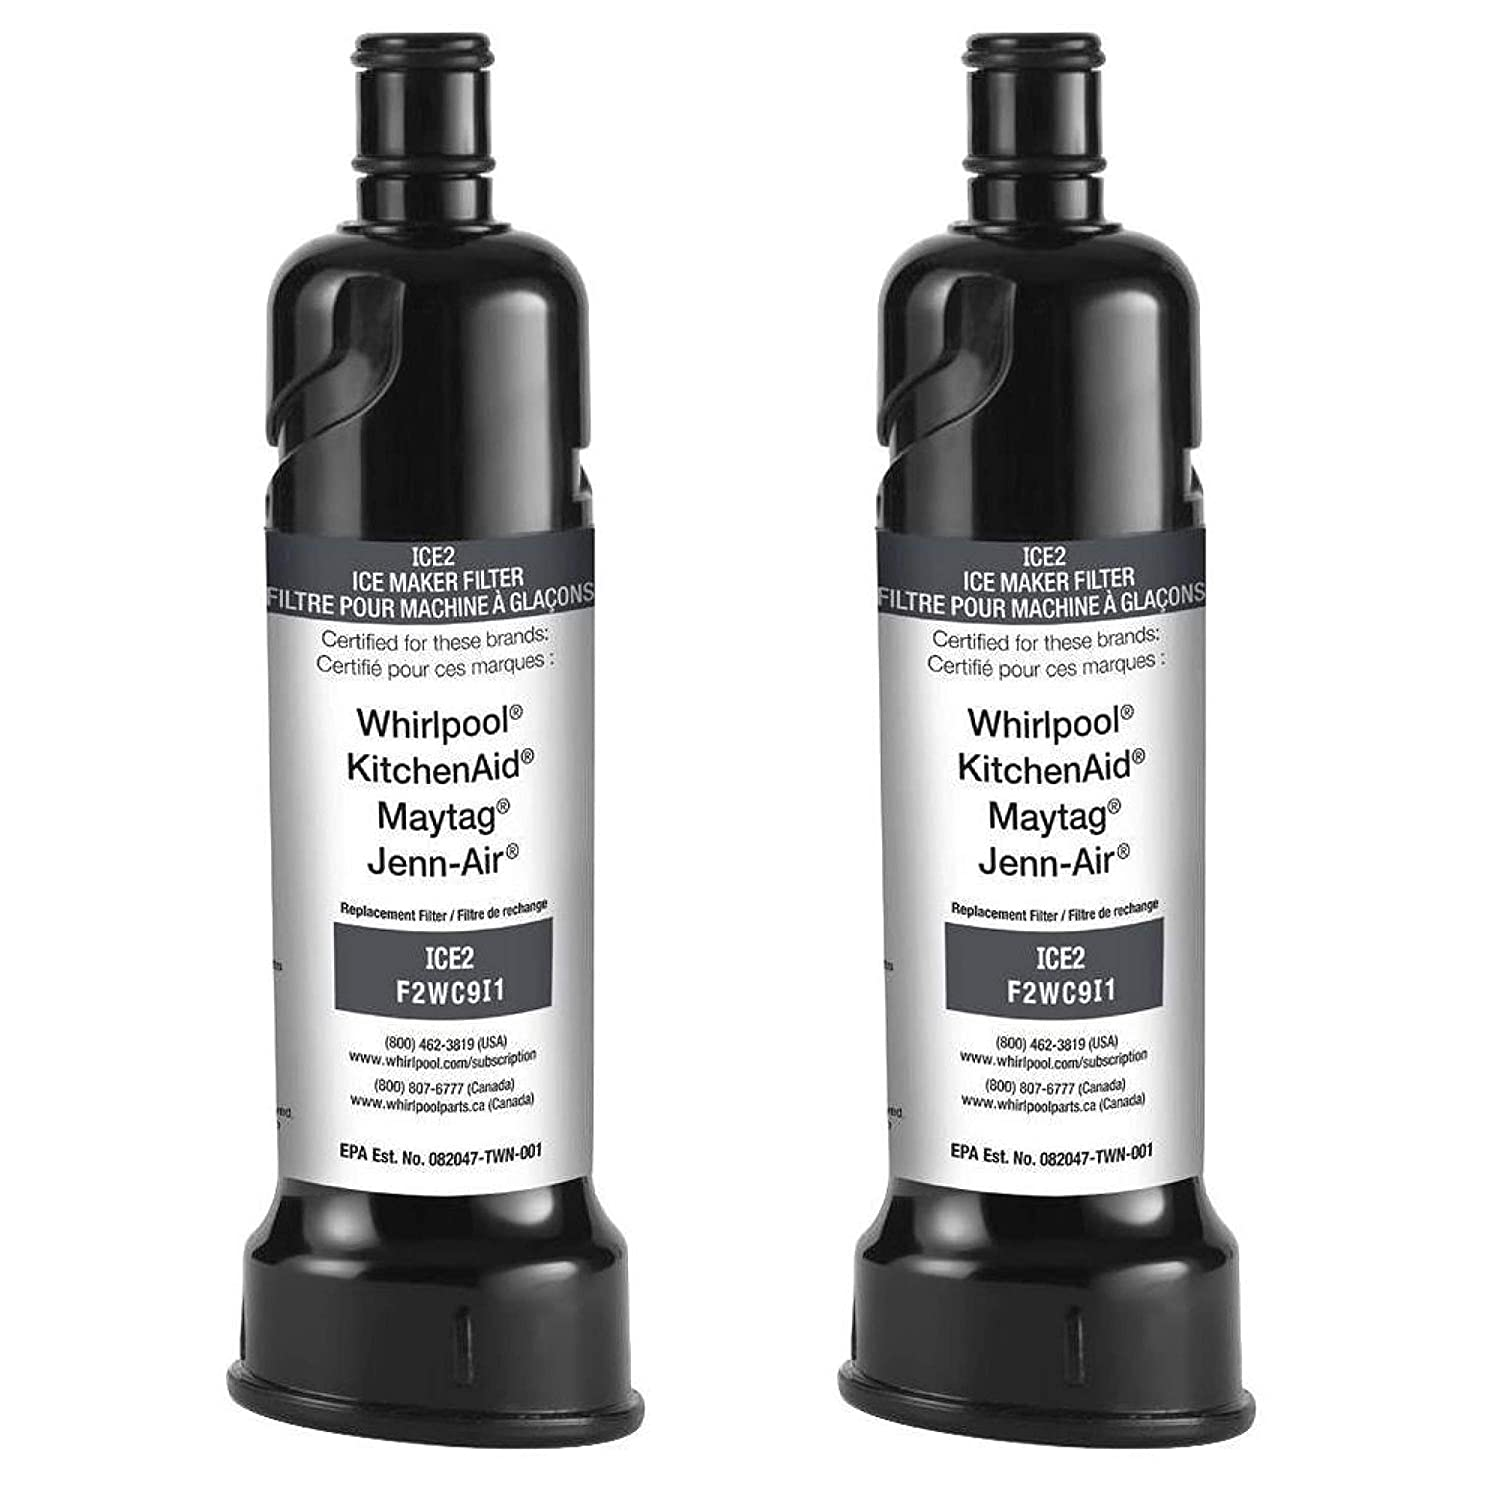 OEM Whirlpool Icemaker Water ICE-2 F2-WC-9I1 Certified Refrigerator (2 Pack)